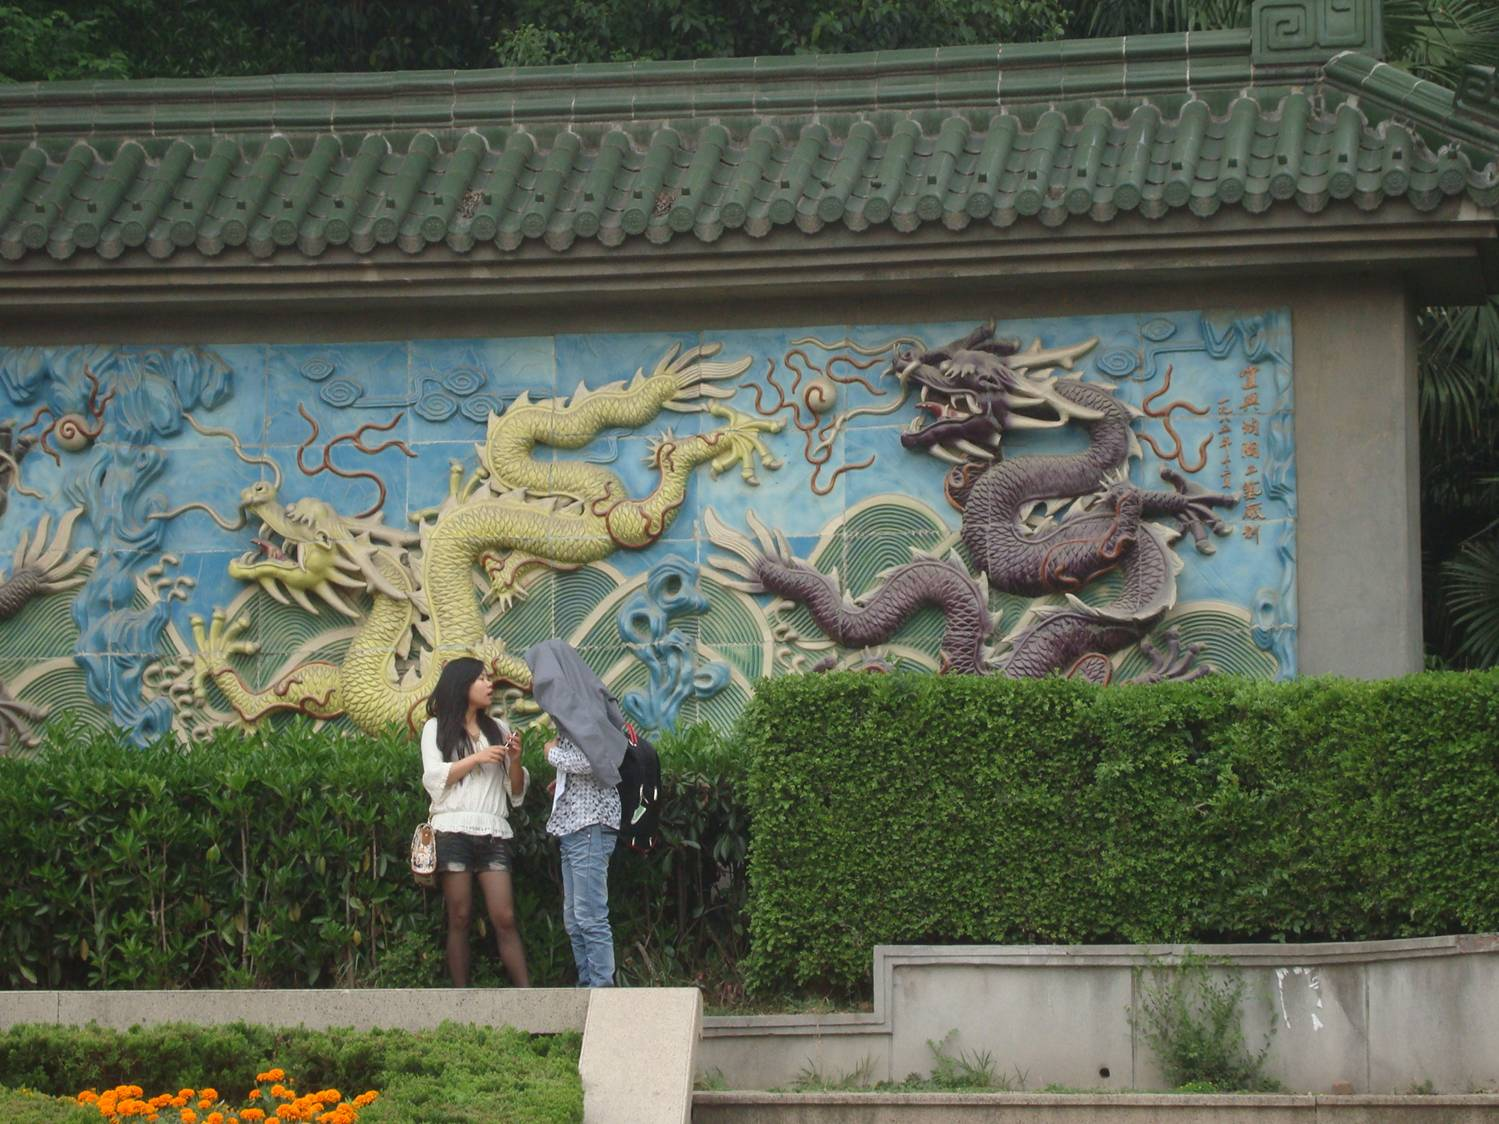 Picture:  The ceramic dragon wall, Xi Hui Park, Wuxi, China